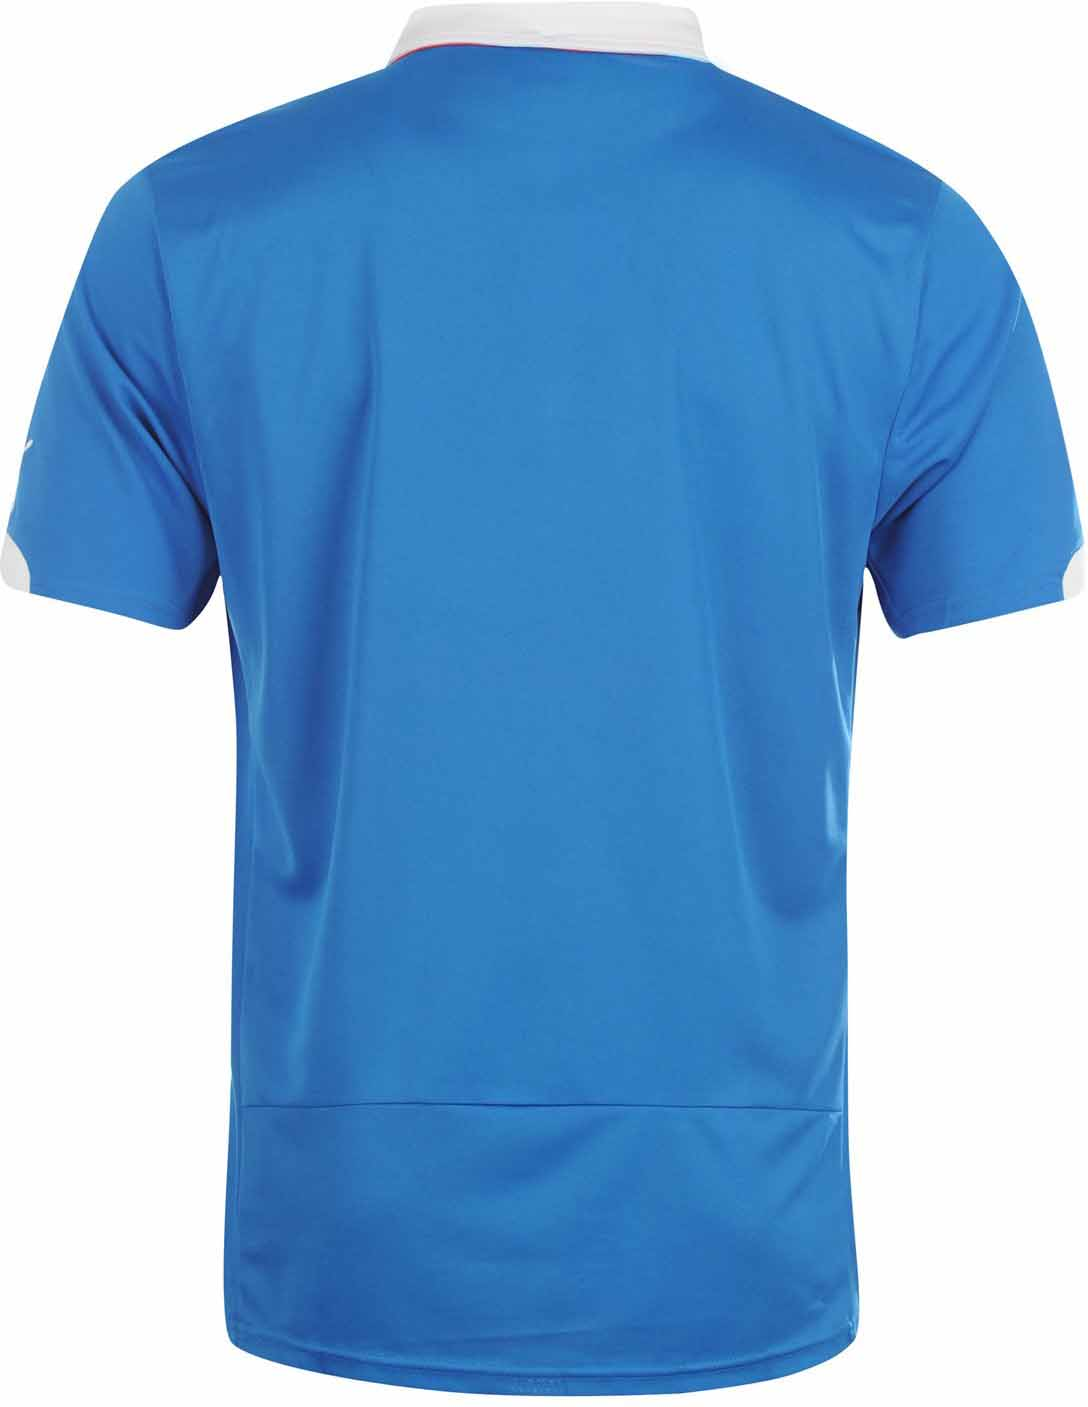 68c048cf4 The new Rangers 14-15 Home Kit is based on a similar template as the Italy  2014 World Cup Home Kit. Puma combines the classical royal blue home color  with ...